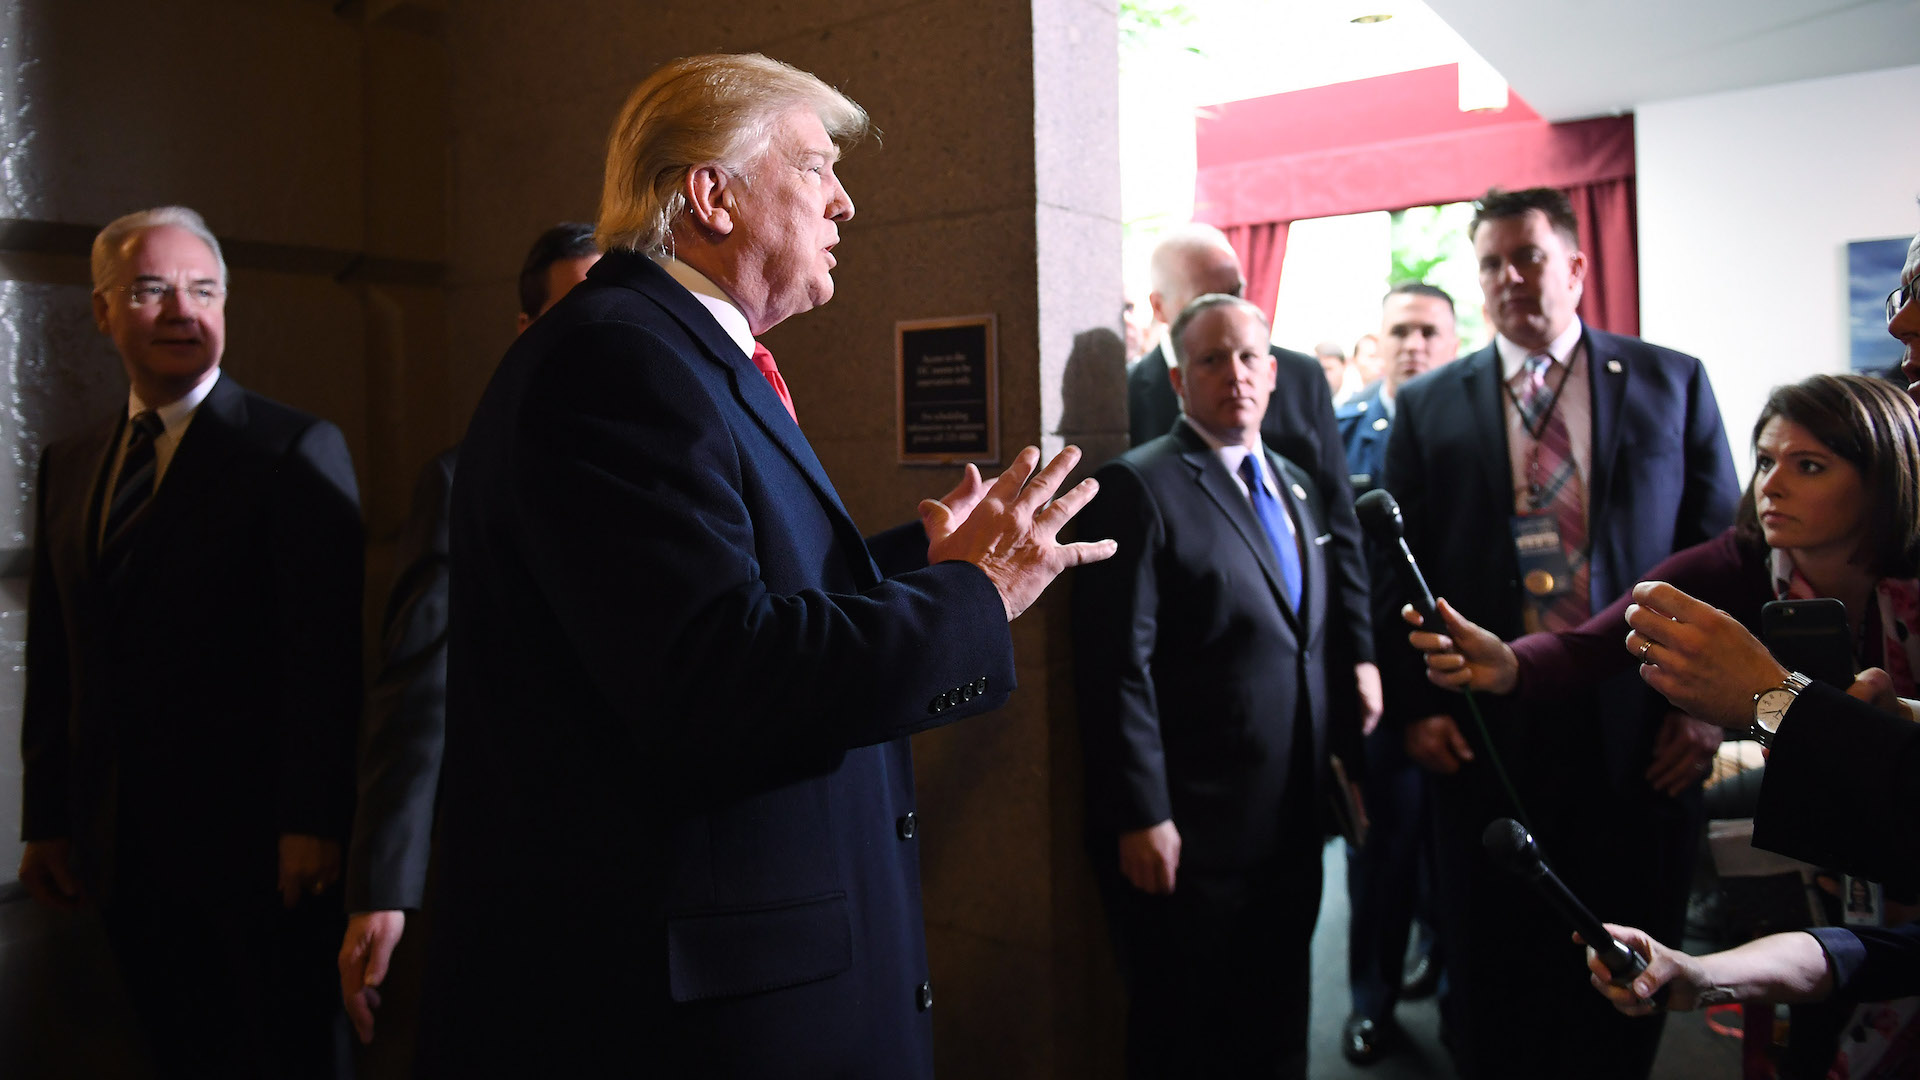 Trump to GOP critics of health care bill: 'I'm gonna come after you'